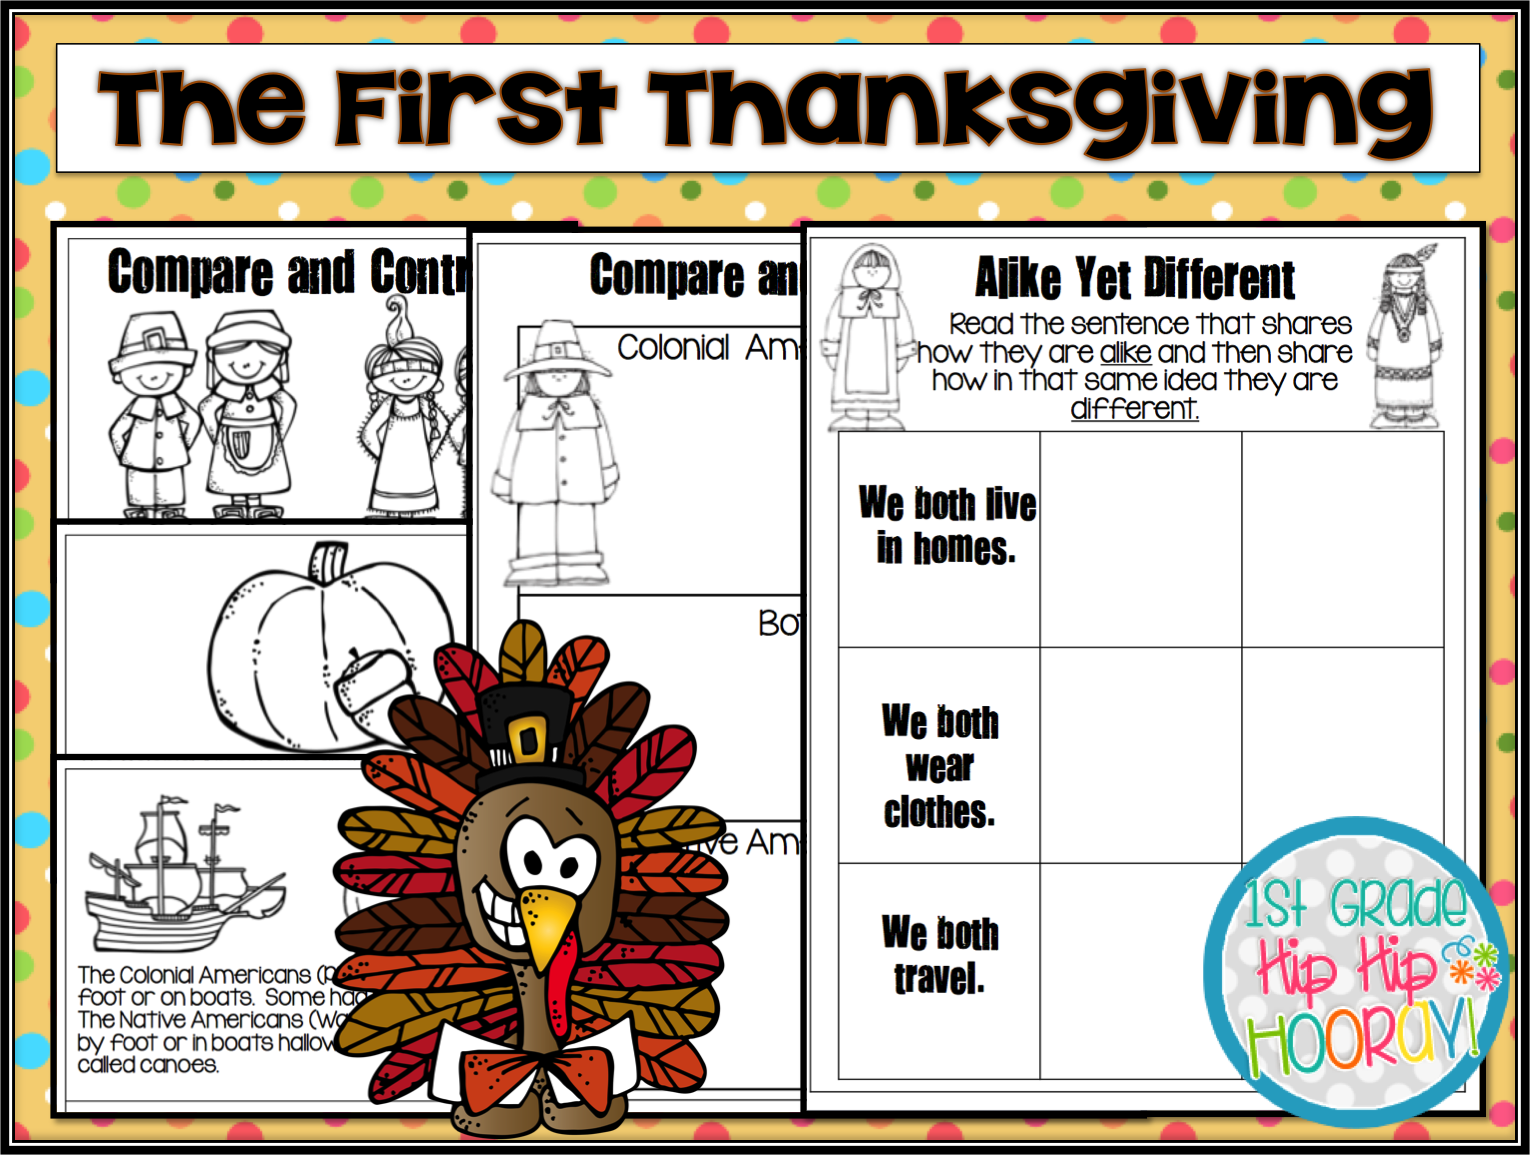 1st Grade Hip Hip Hooray The First Thanksgiving